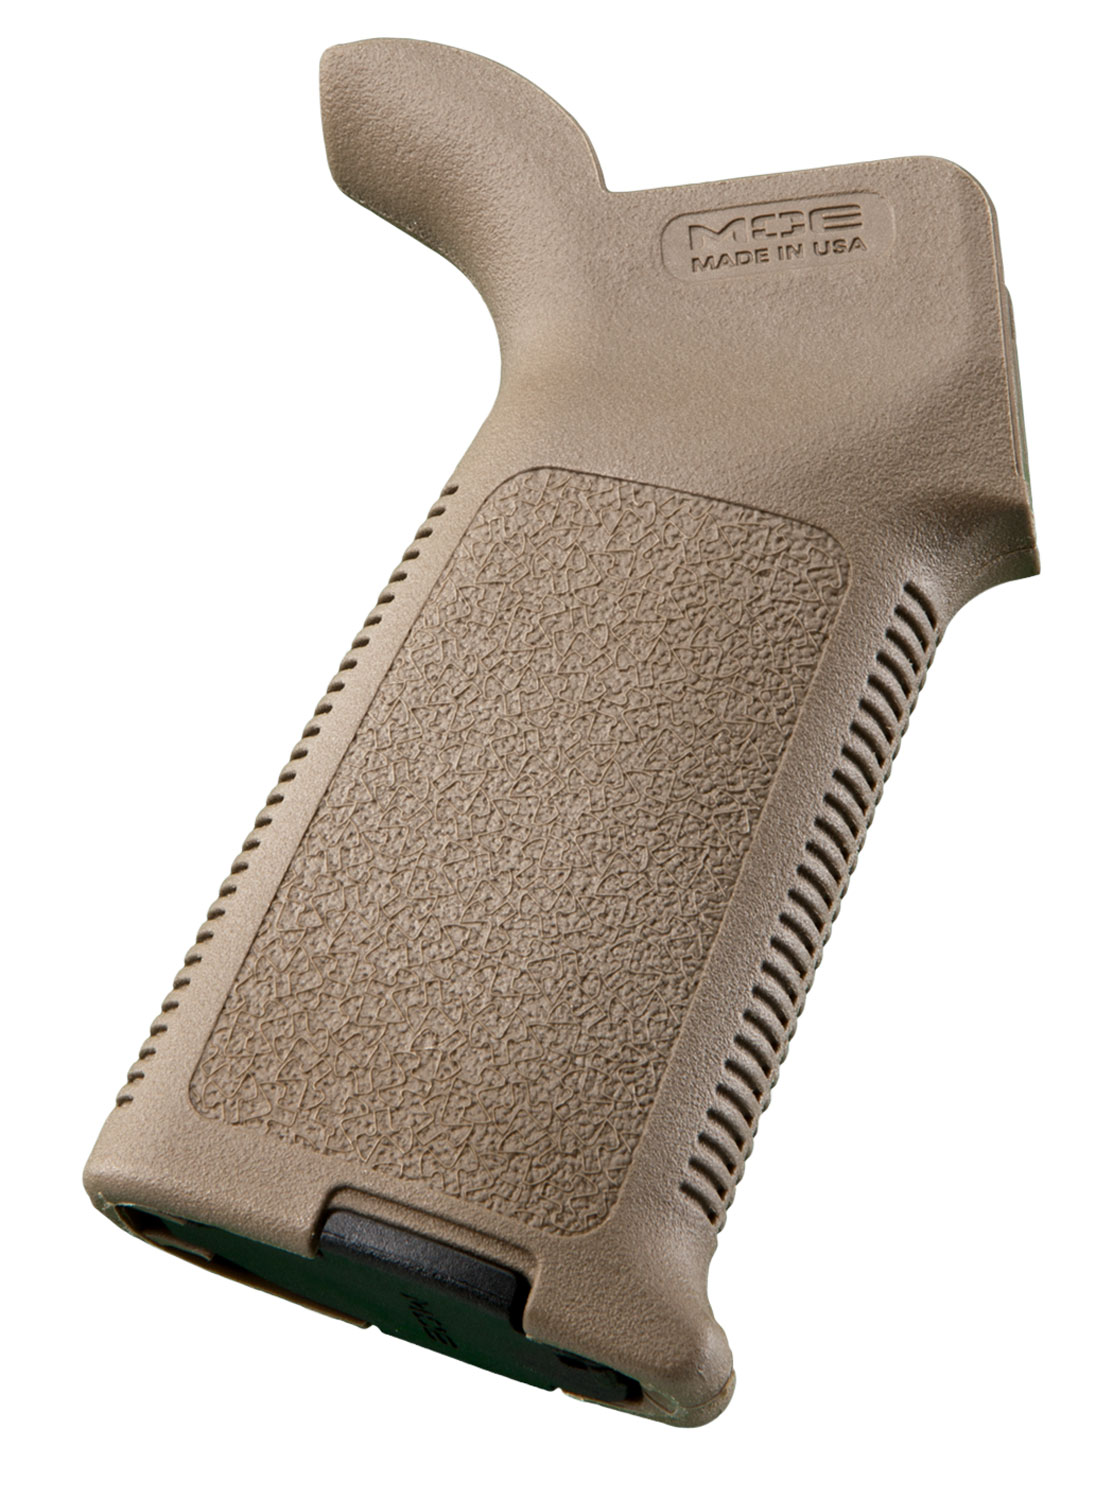 Magpul MAG415-FDE MOE  Pistol Grip Aggressive Textured Polymer Flat Dark Earth